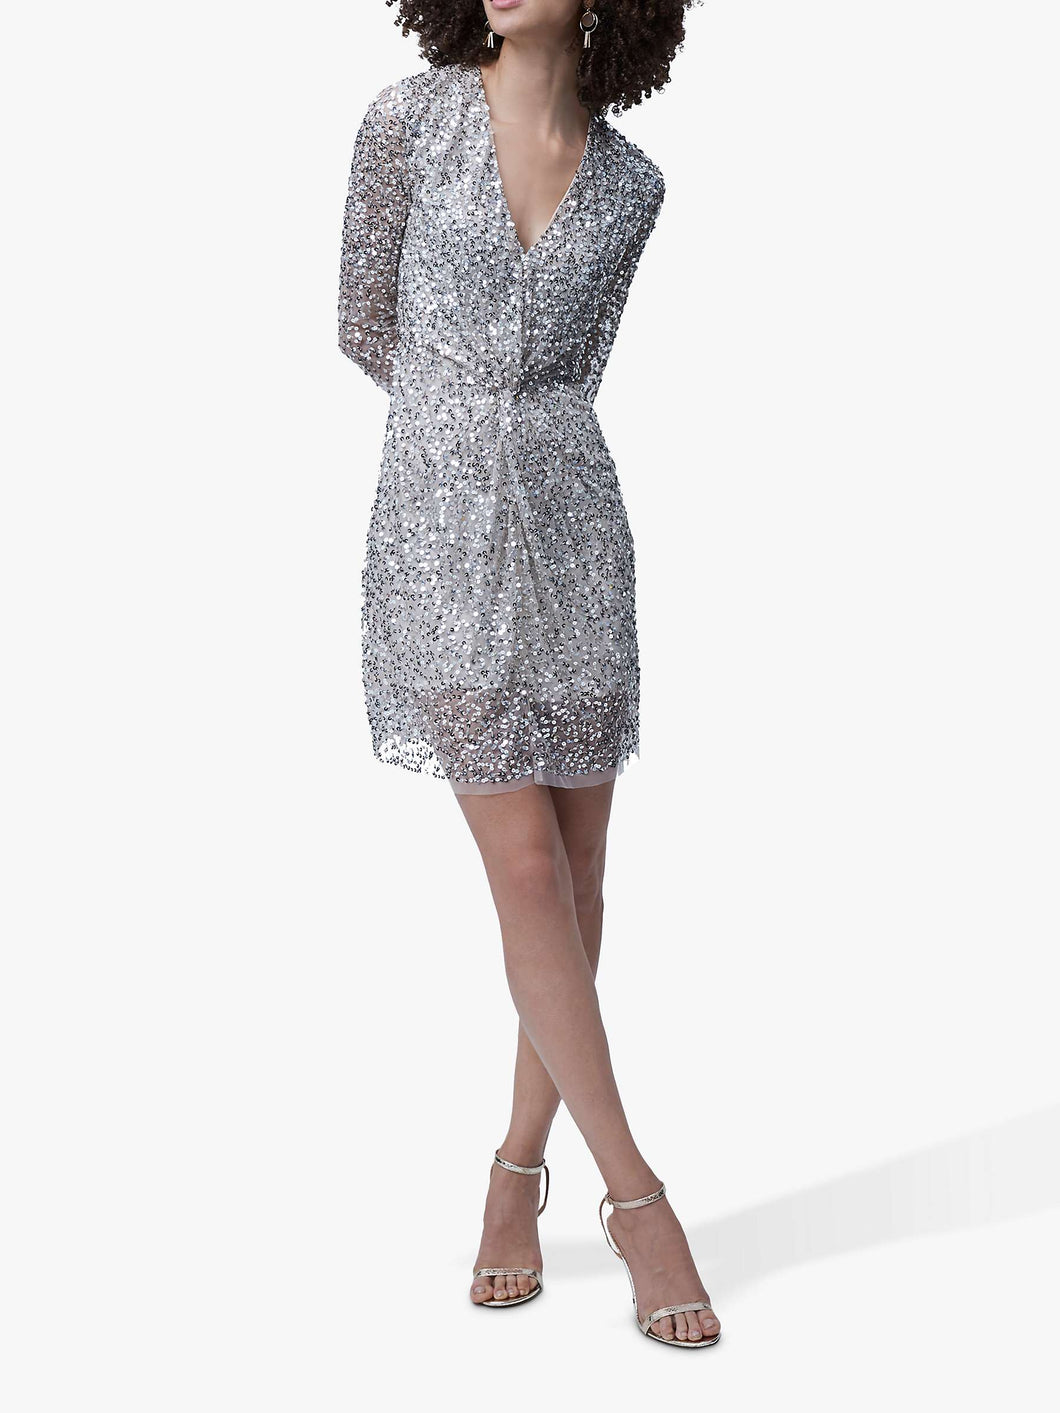 French Connection Sparkle Short Dress, Silver